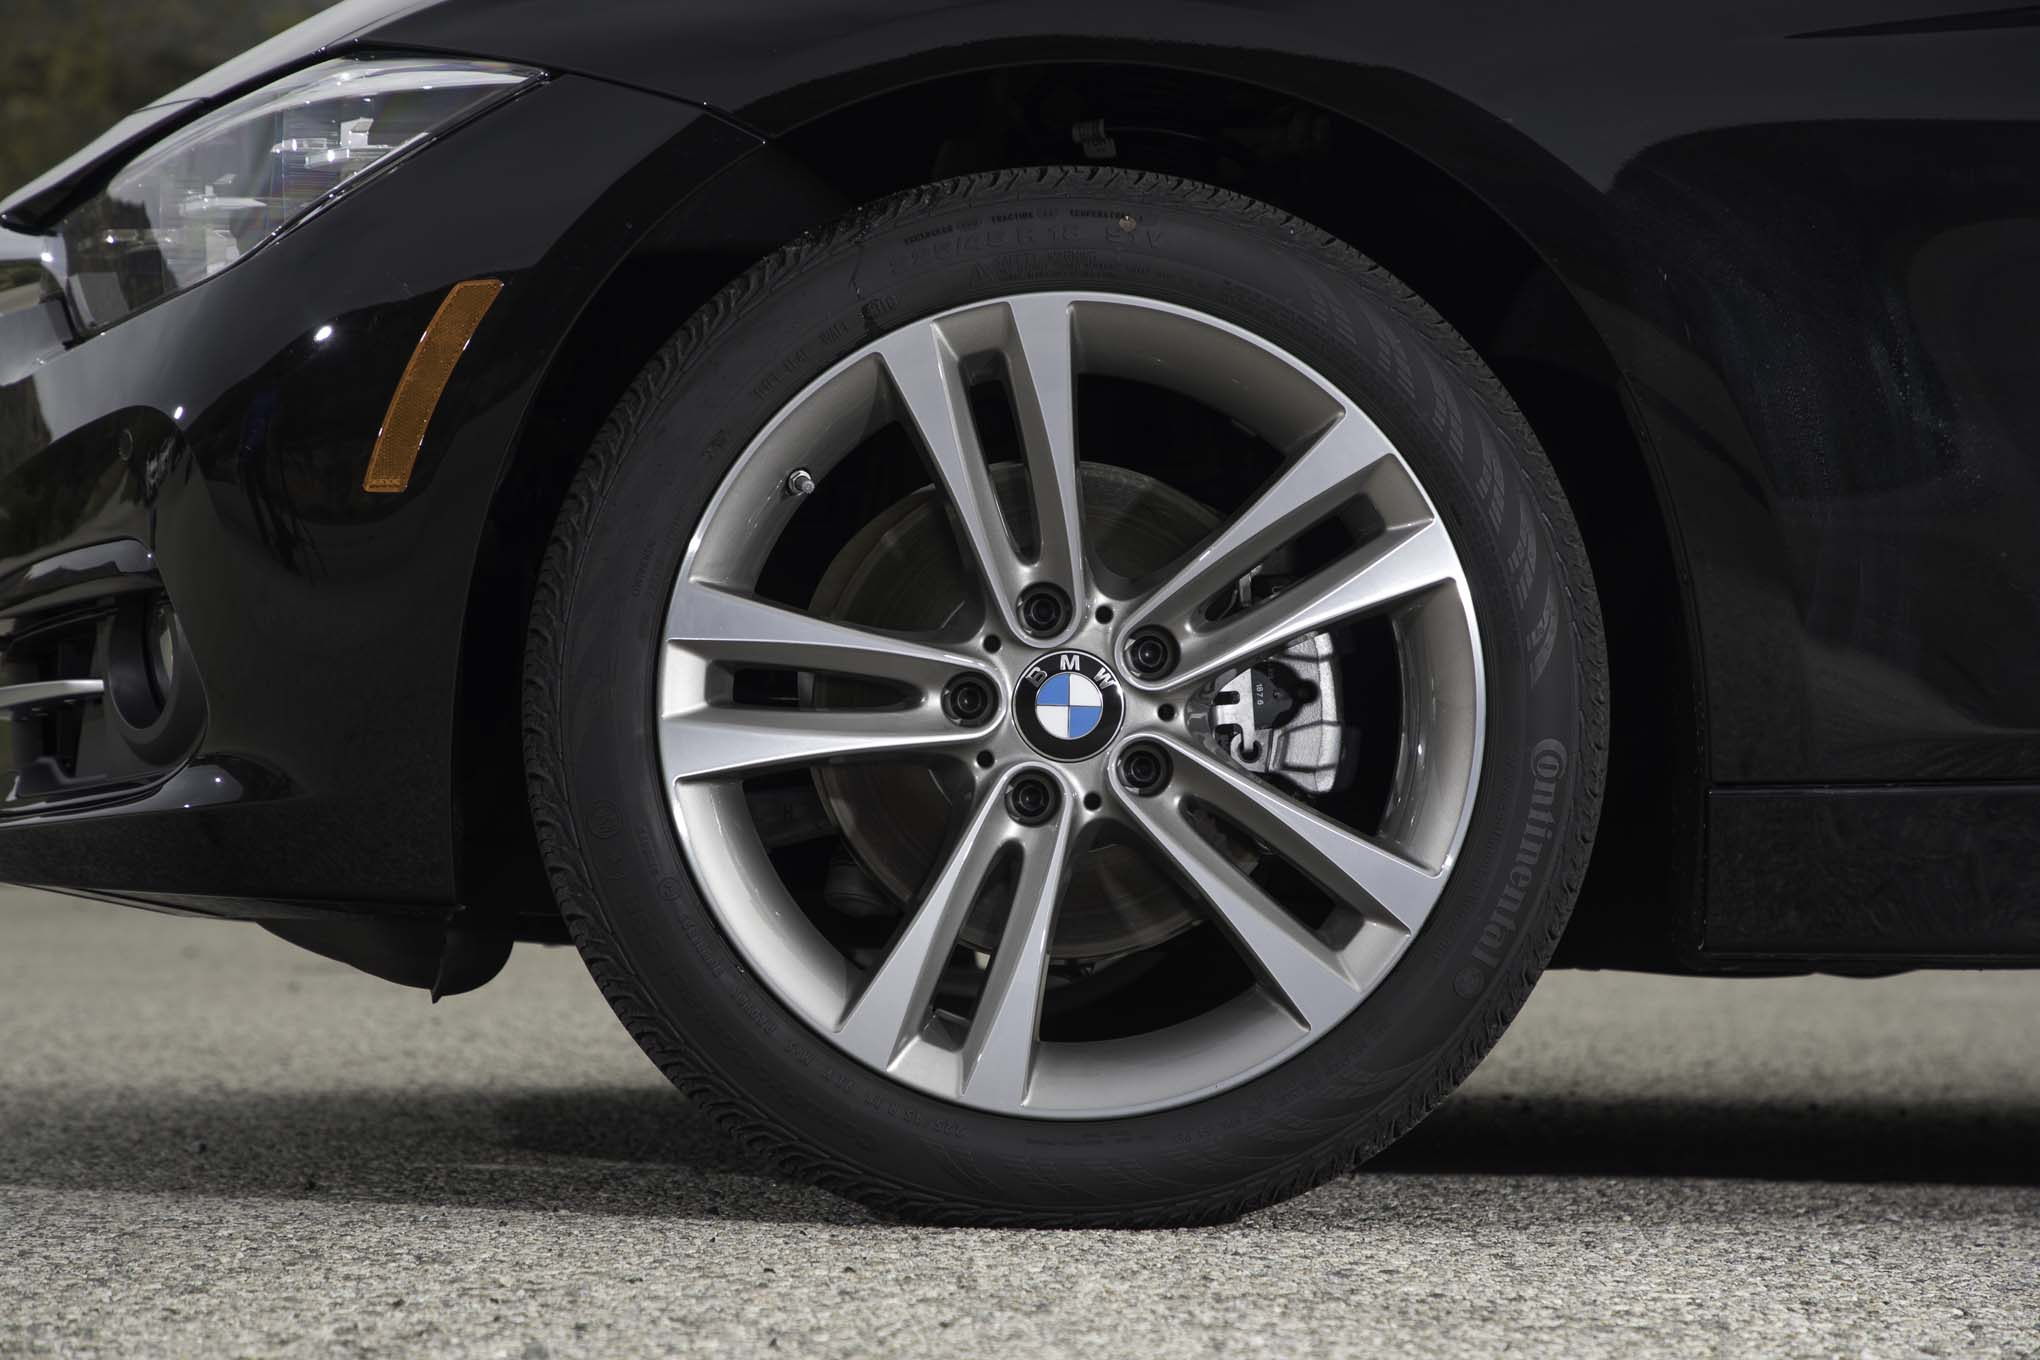 2017 BMW 330i Sedan Exterior View Wheel Profile (View 47 of 59)